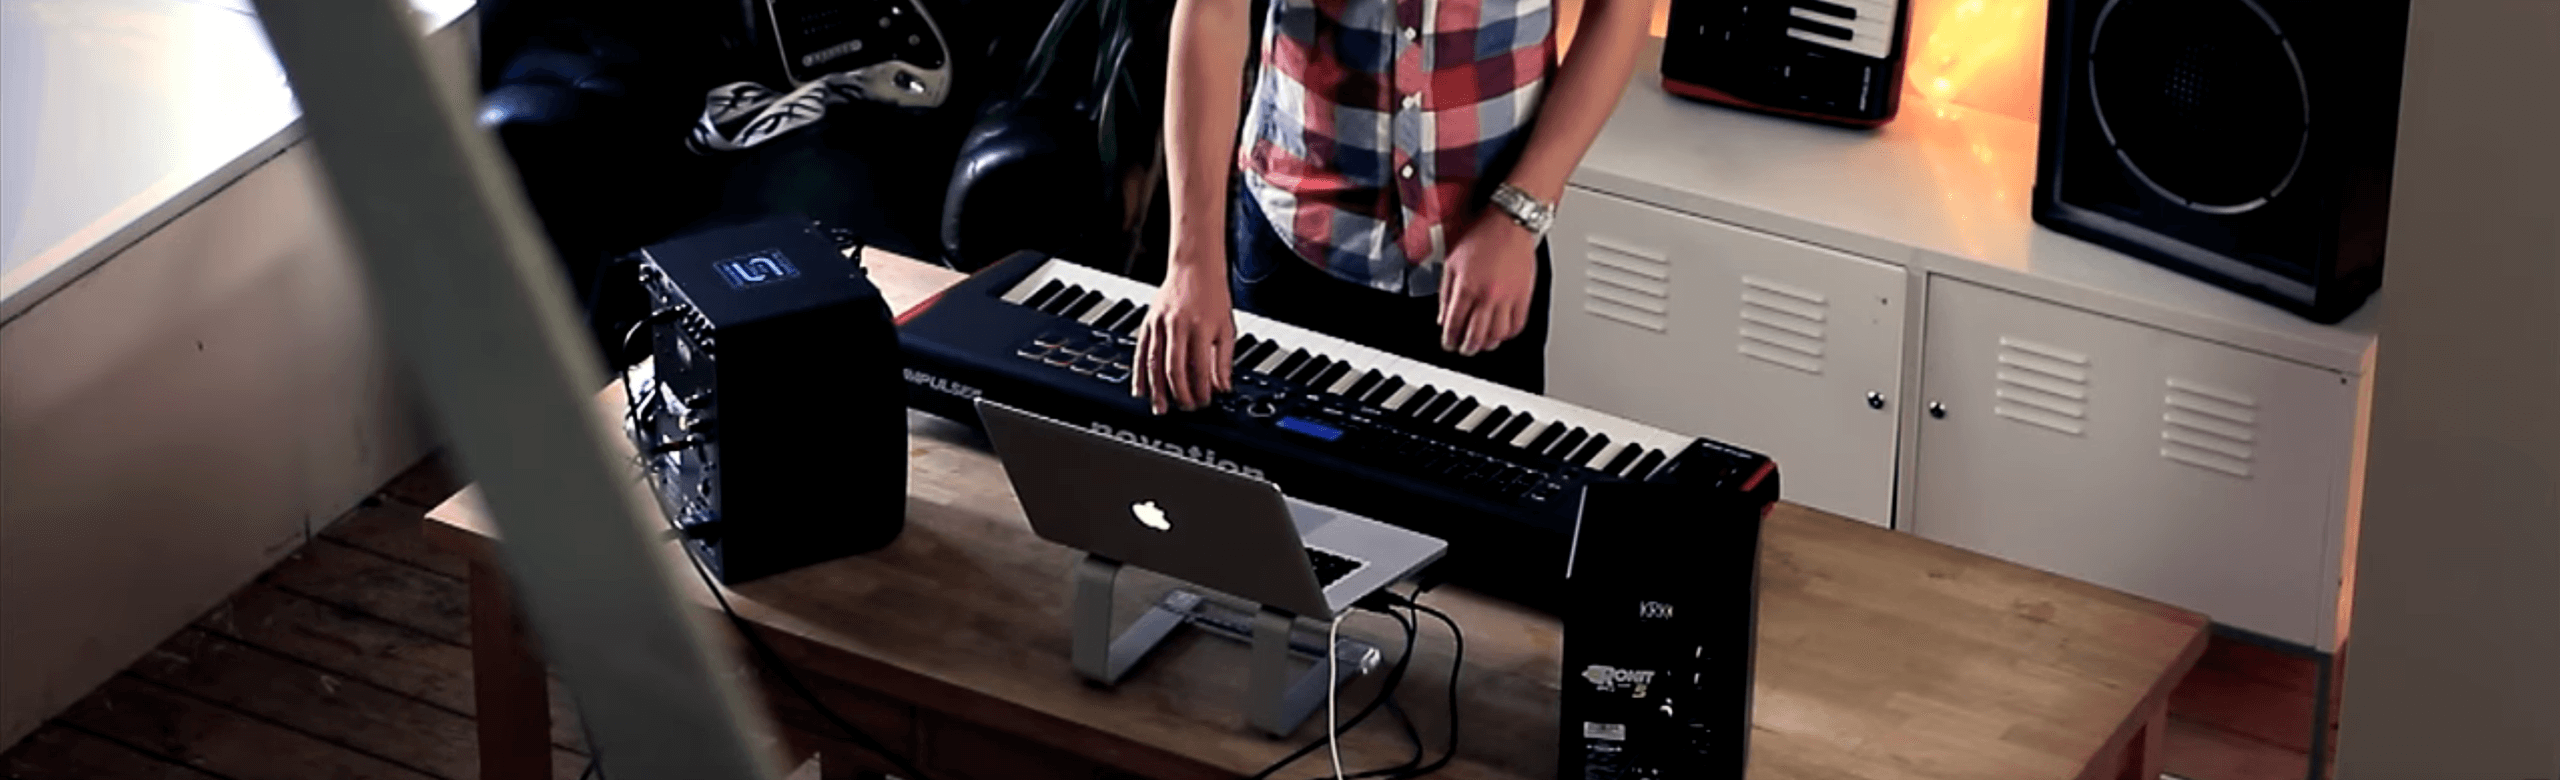 Impulse MIDI Controller Keyboard Overview